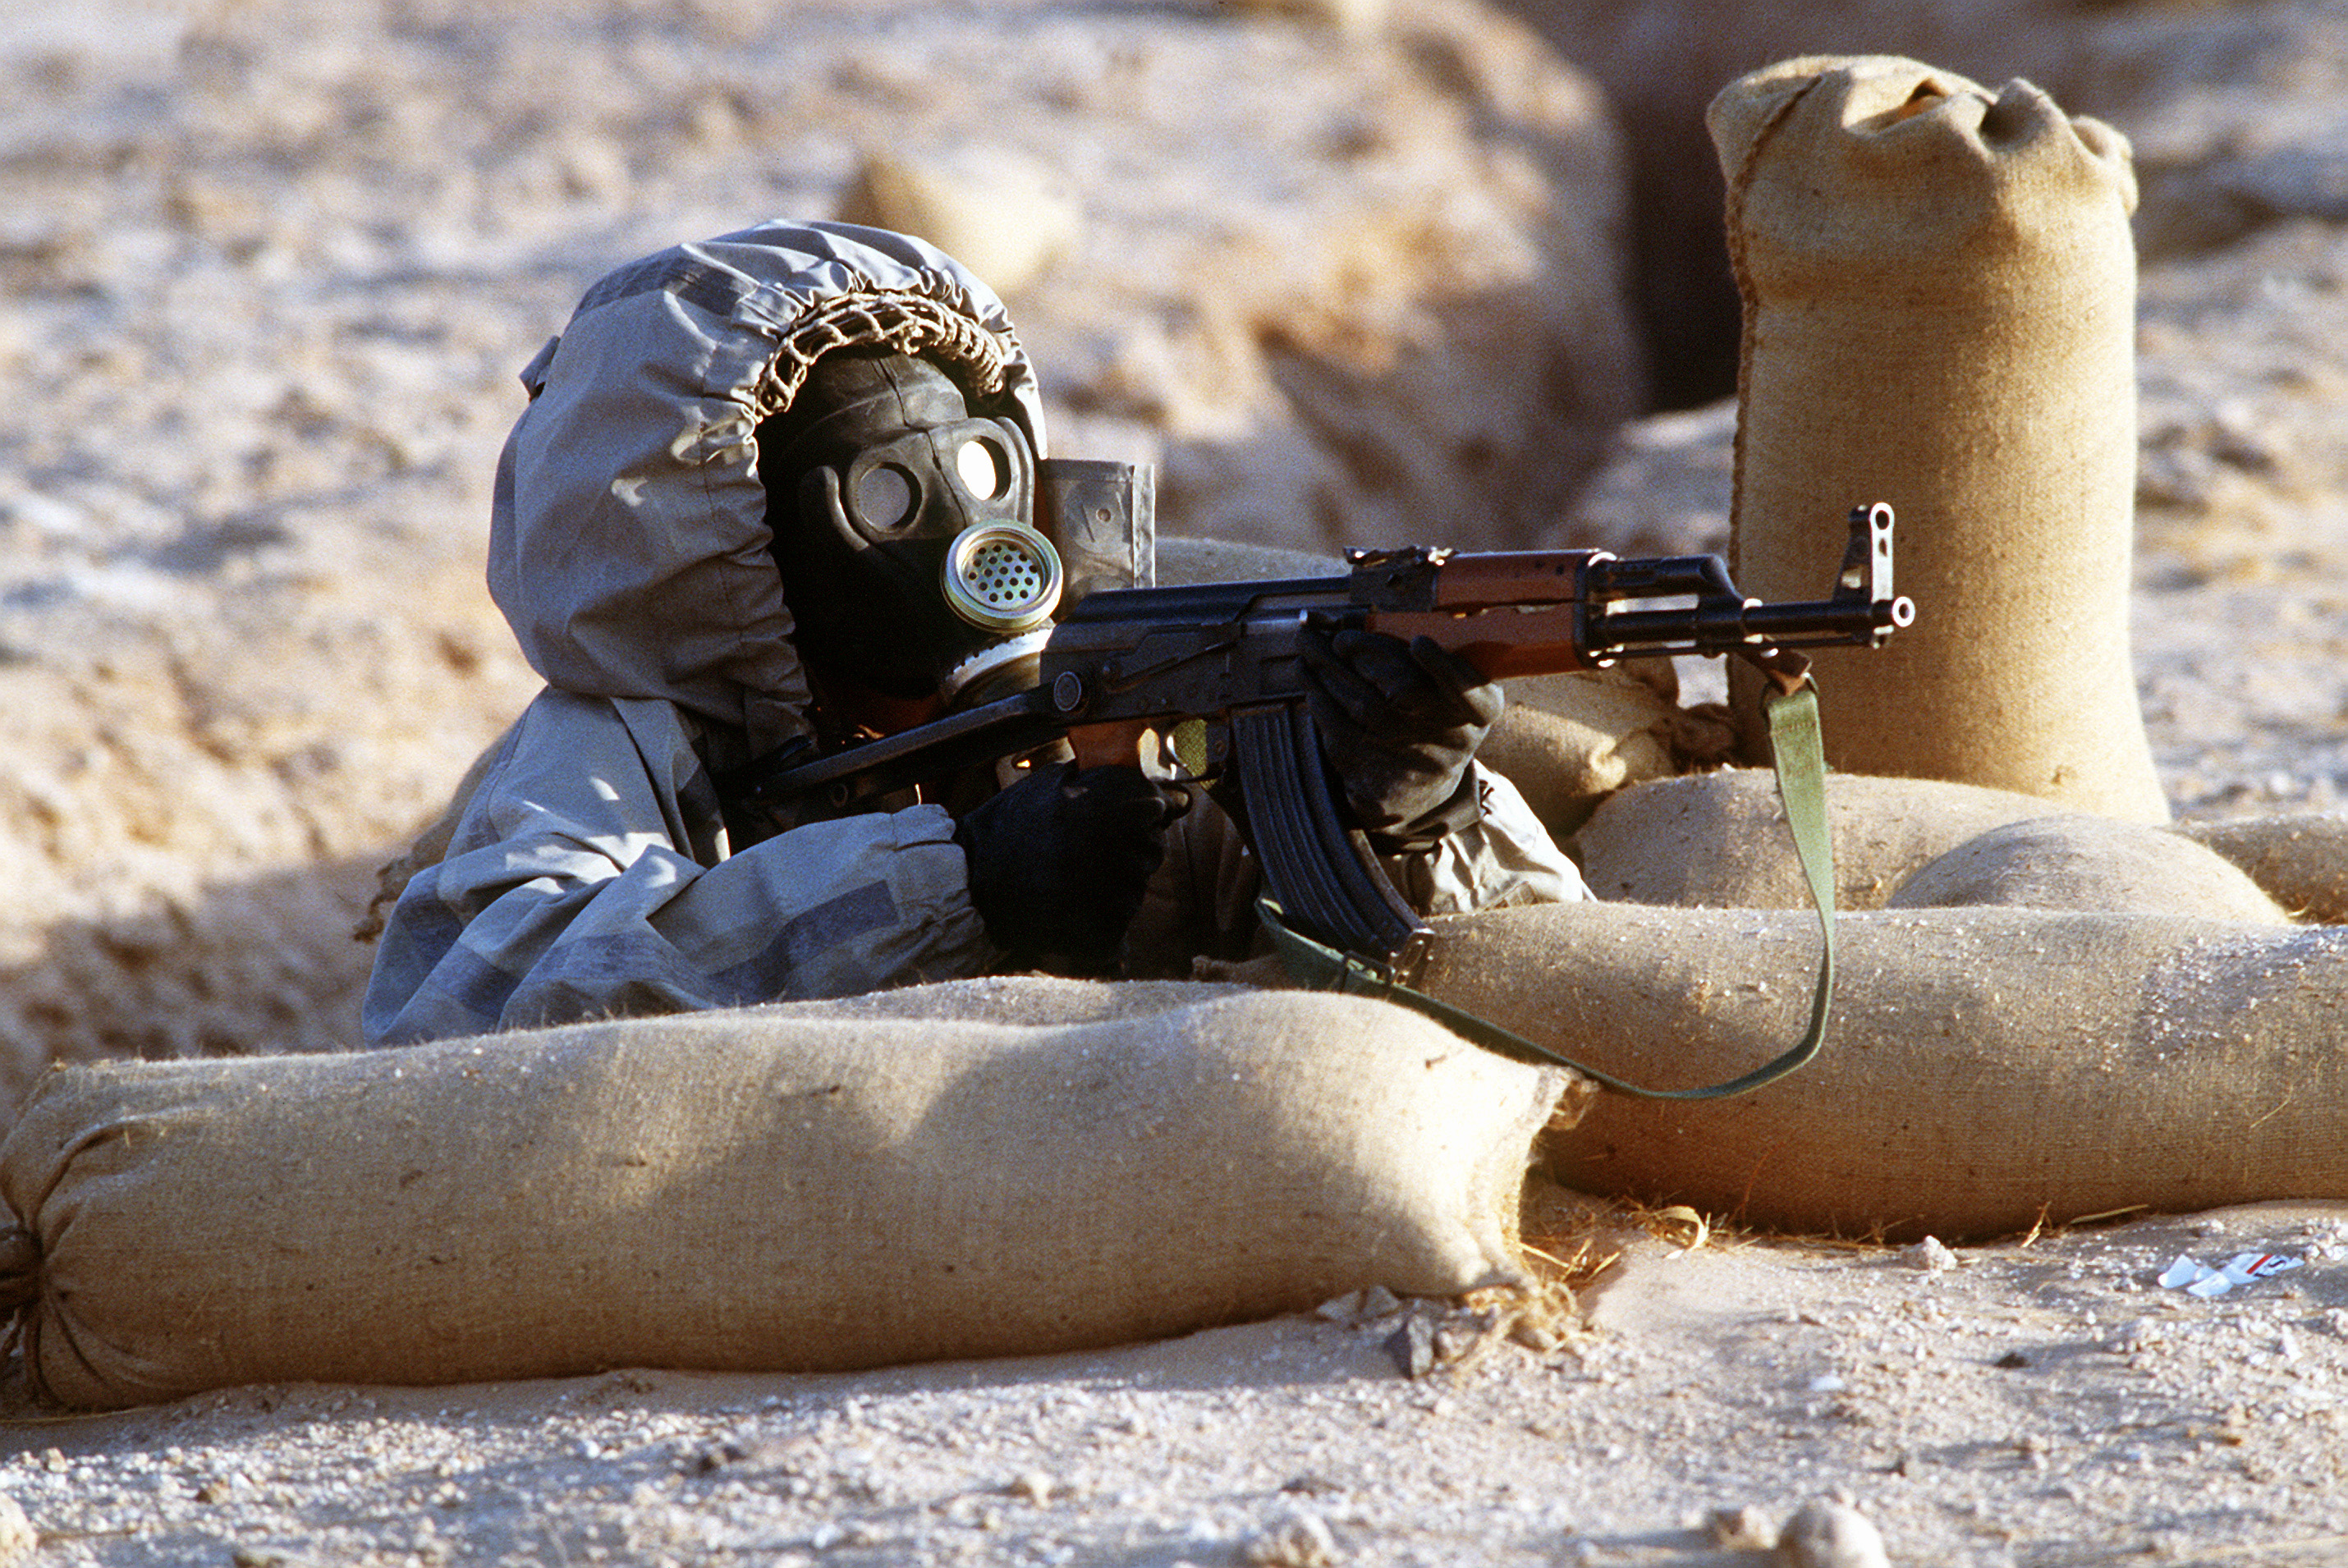 HRW report: Syria government used chemical weapons